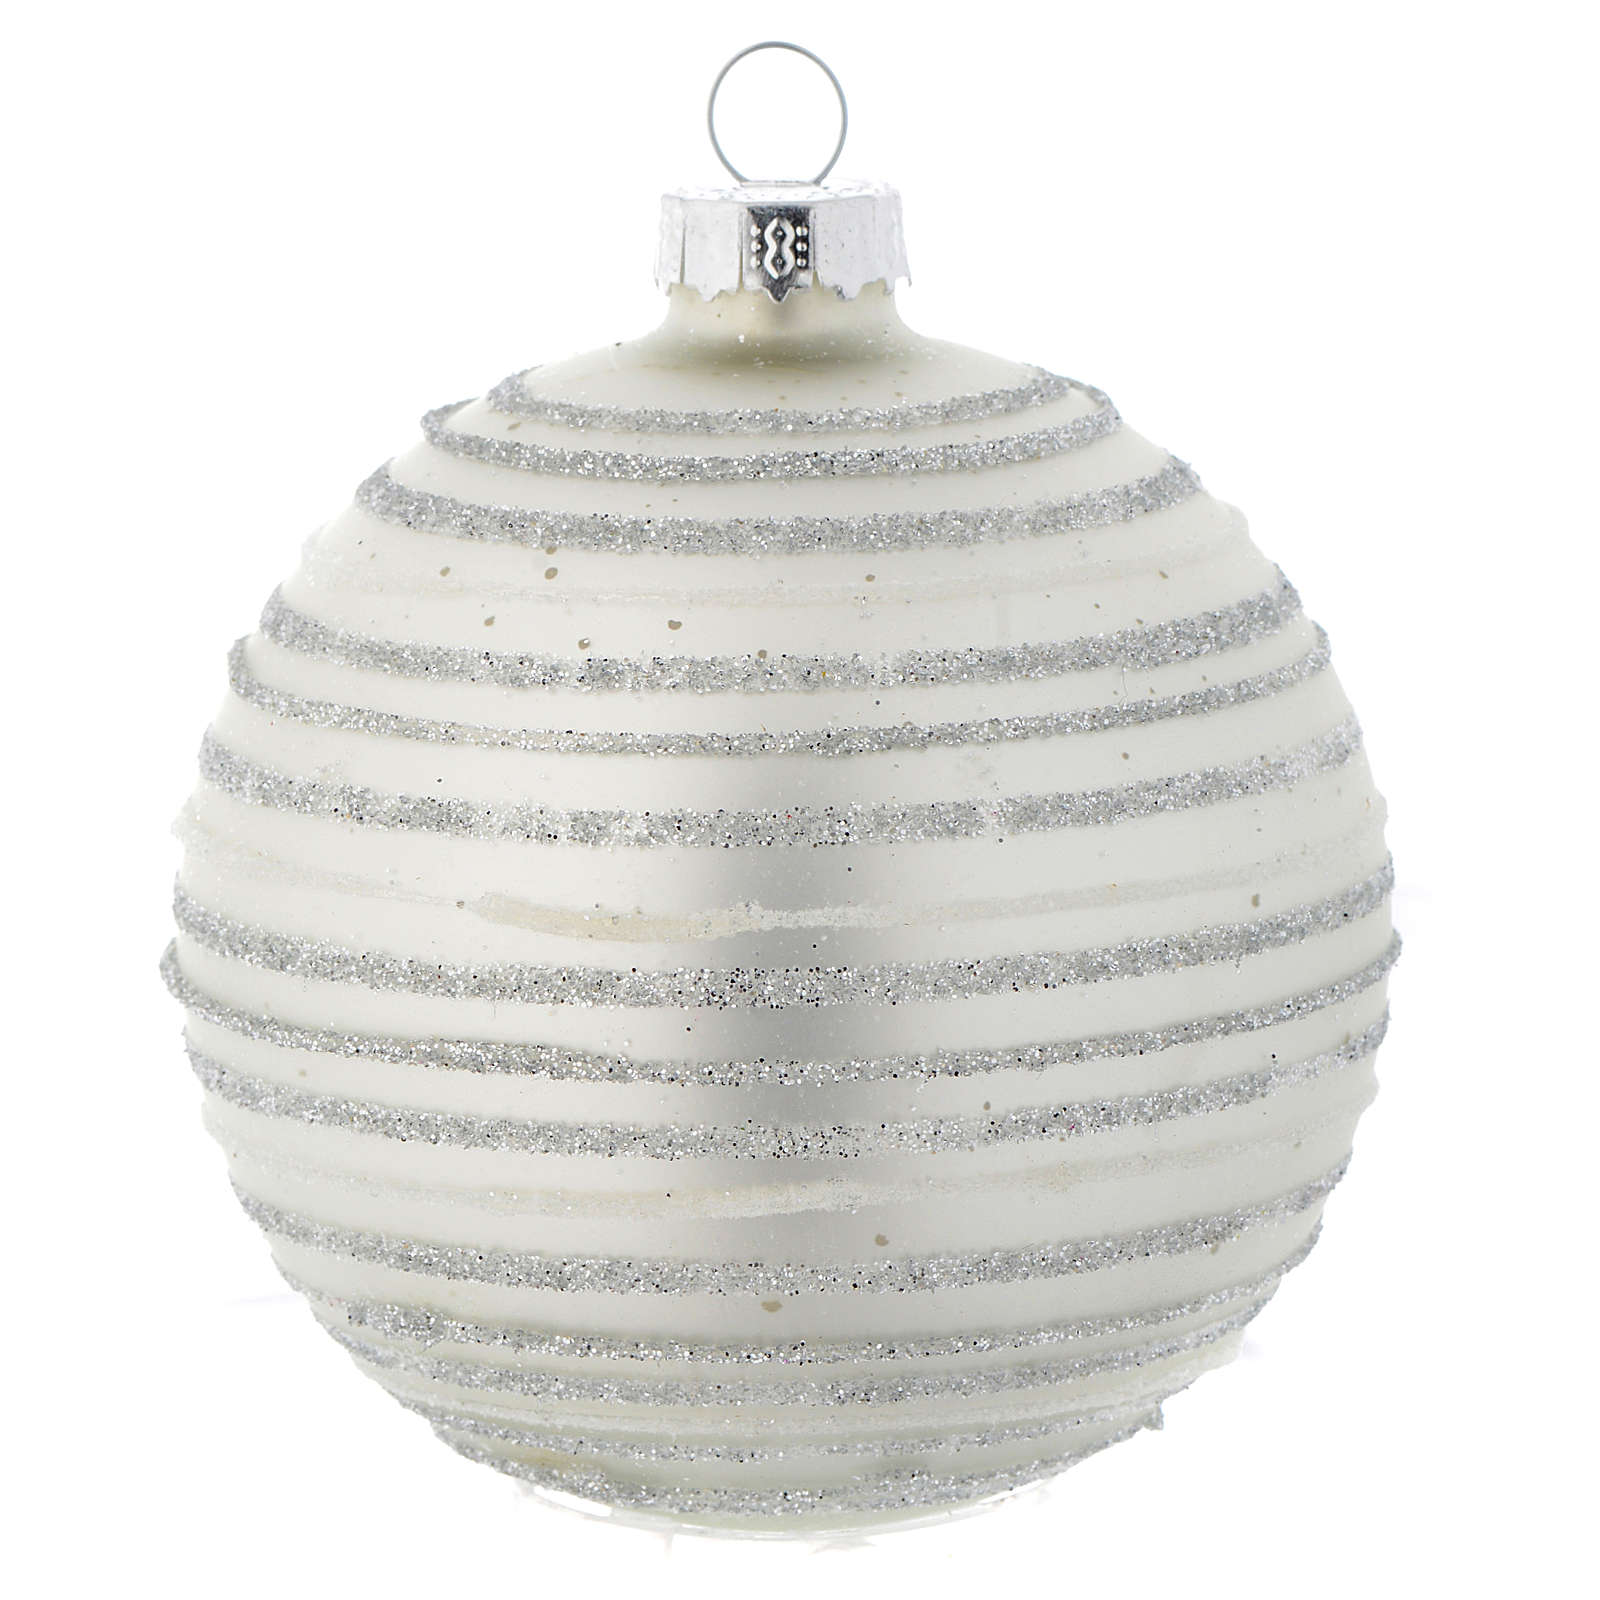 Silver white Christmas bauble with decoration, 80mm diameter 4